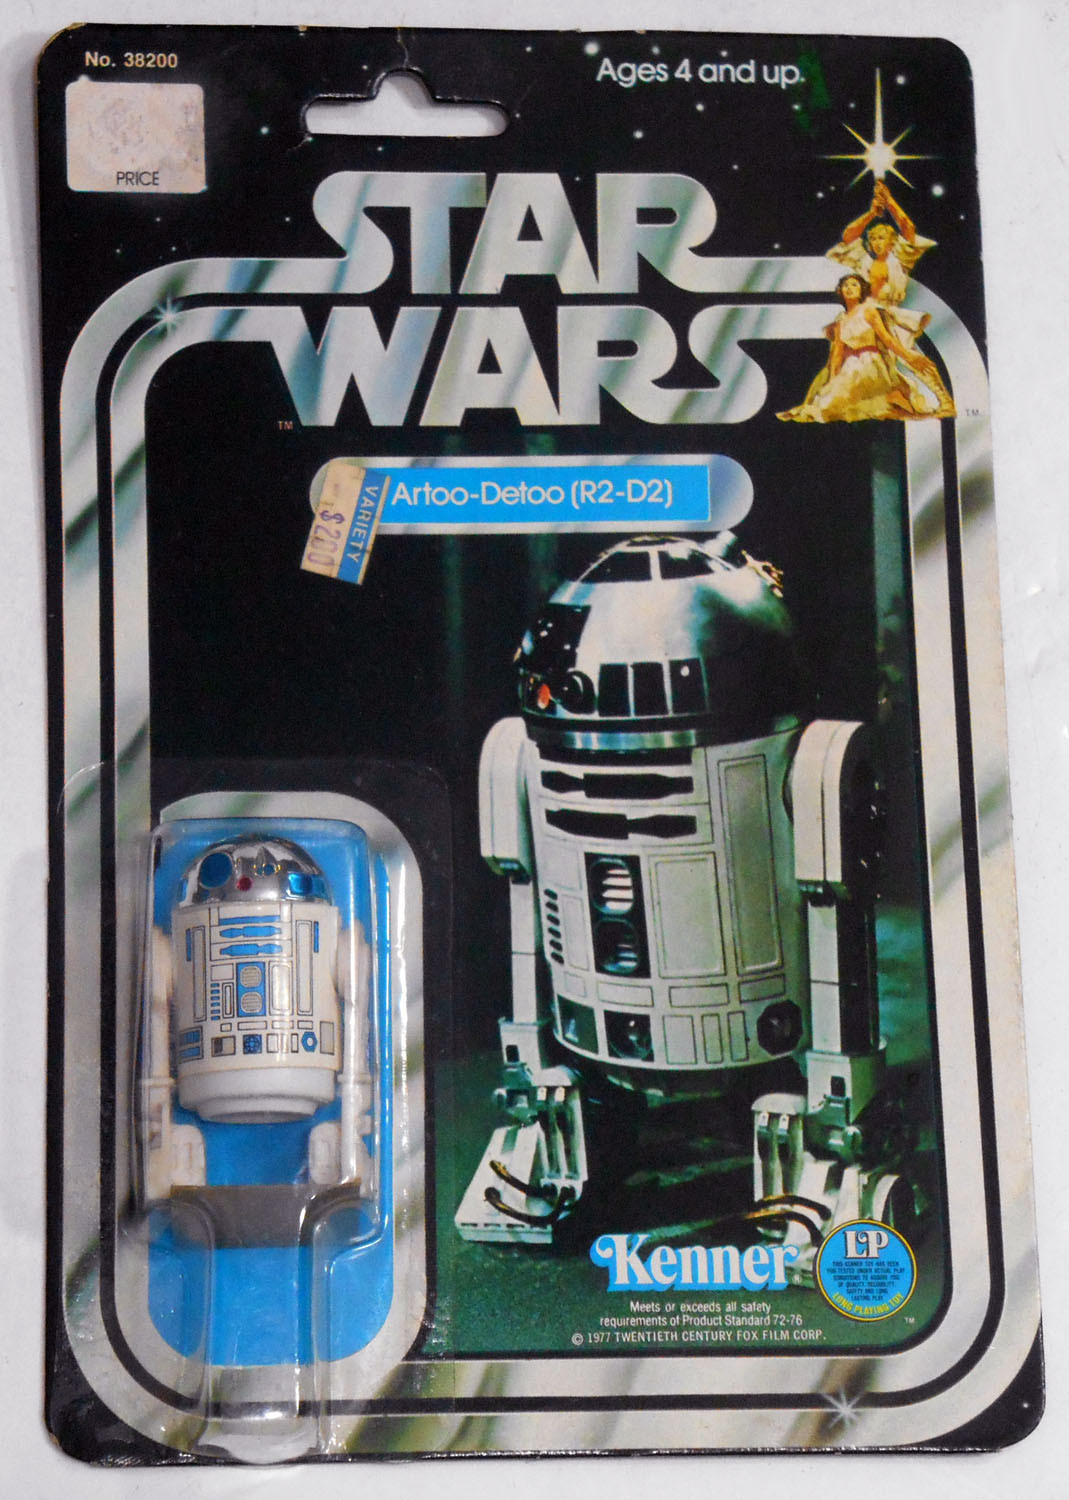 Star Wars Vintage Toys : The top vintage star wars action figures fromkenner